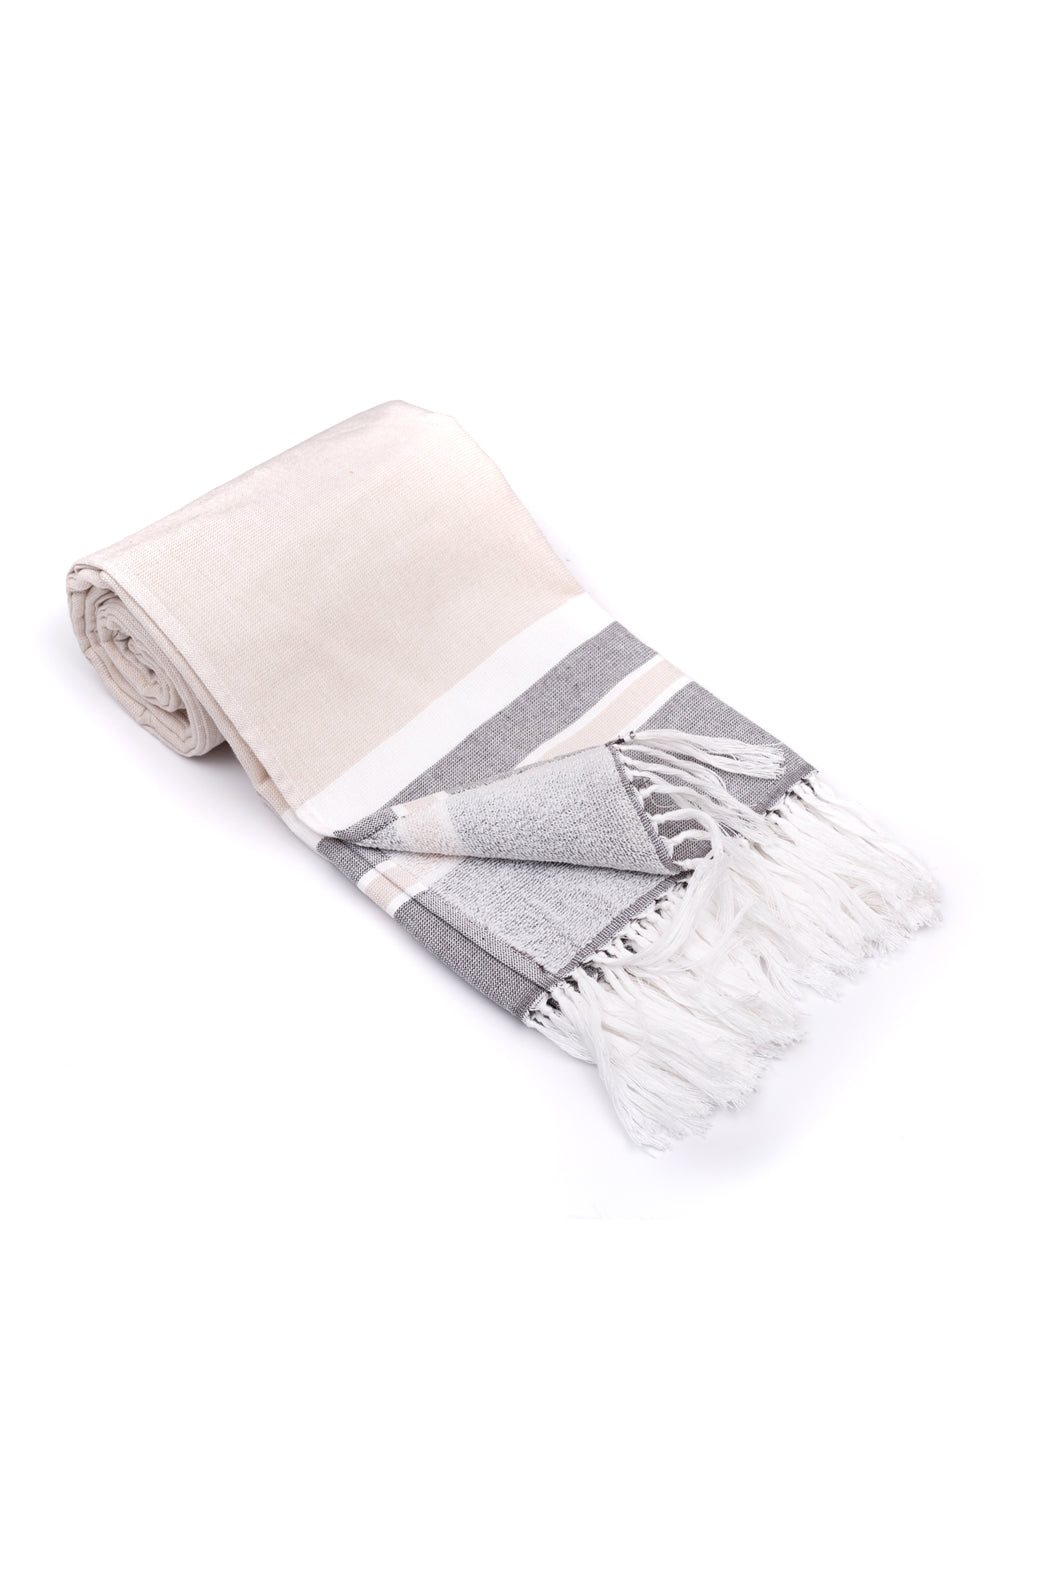 Beige Soft Turkish Towel for the Bath or Beach with Terry Cloth on One Side